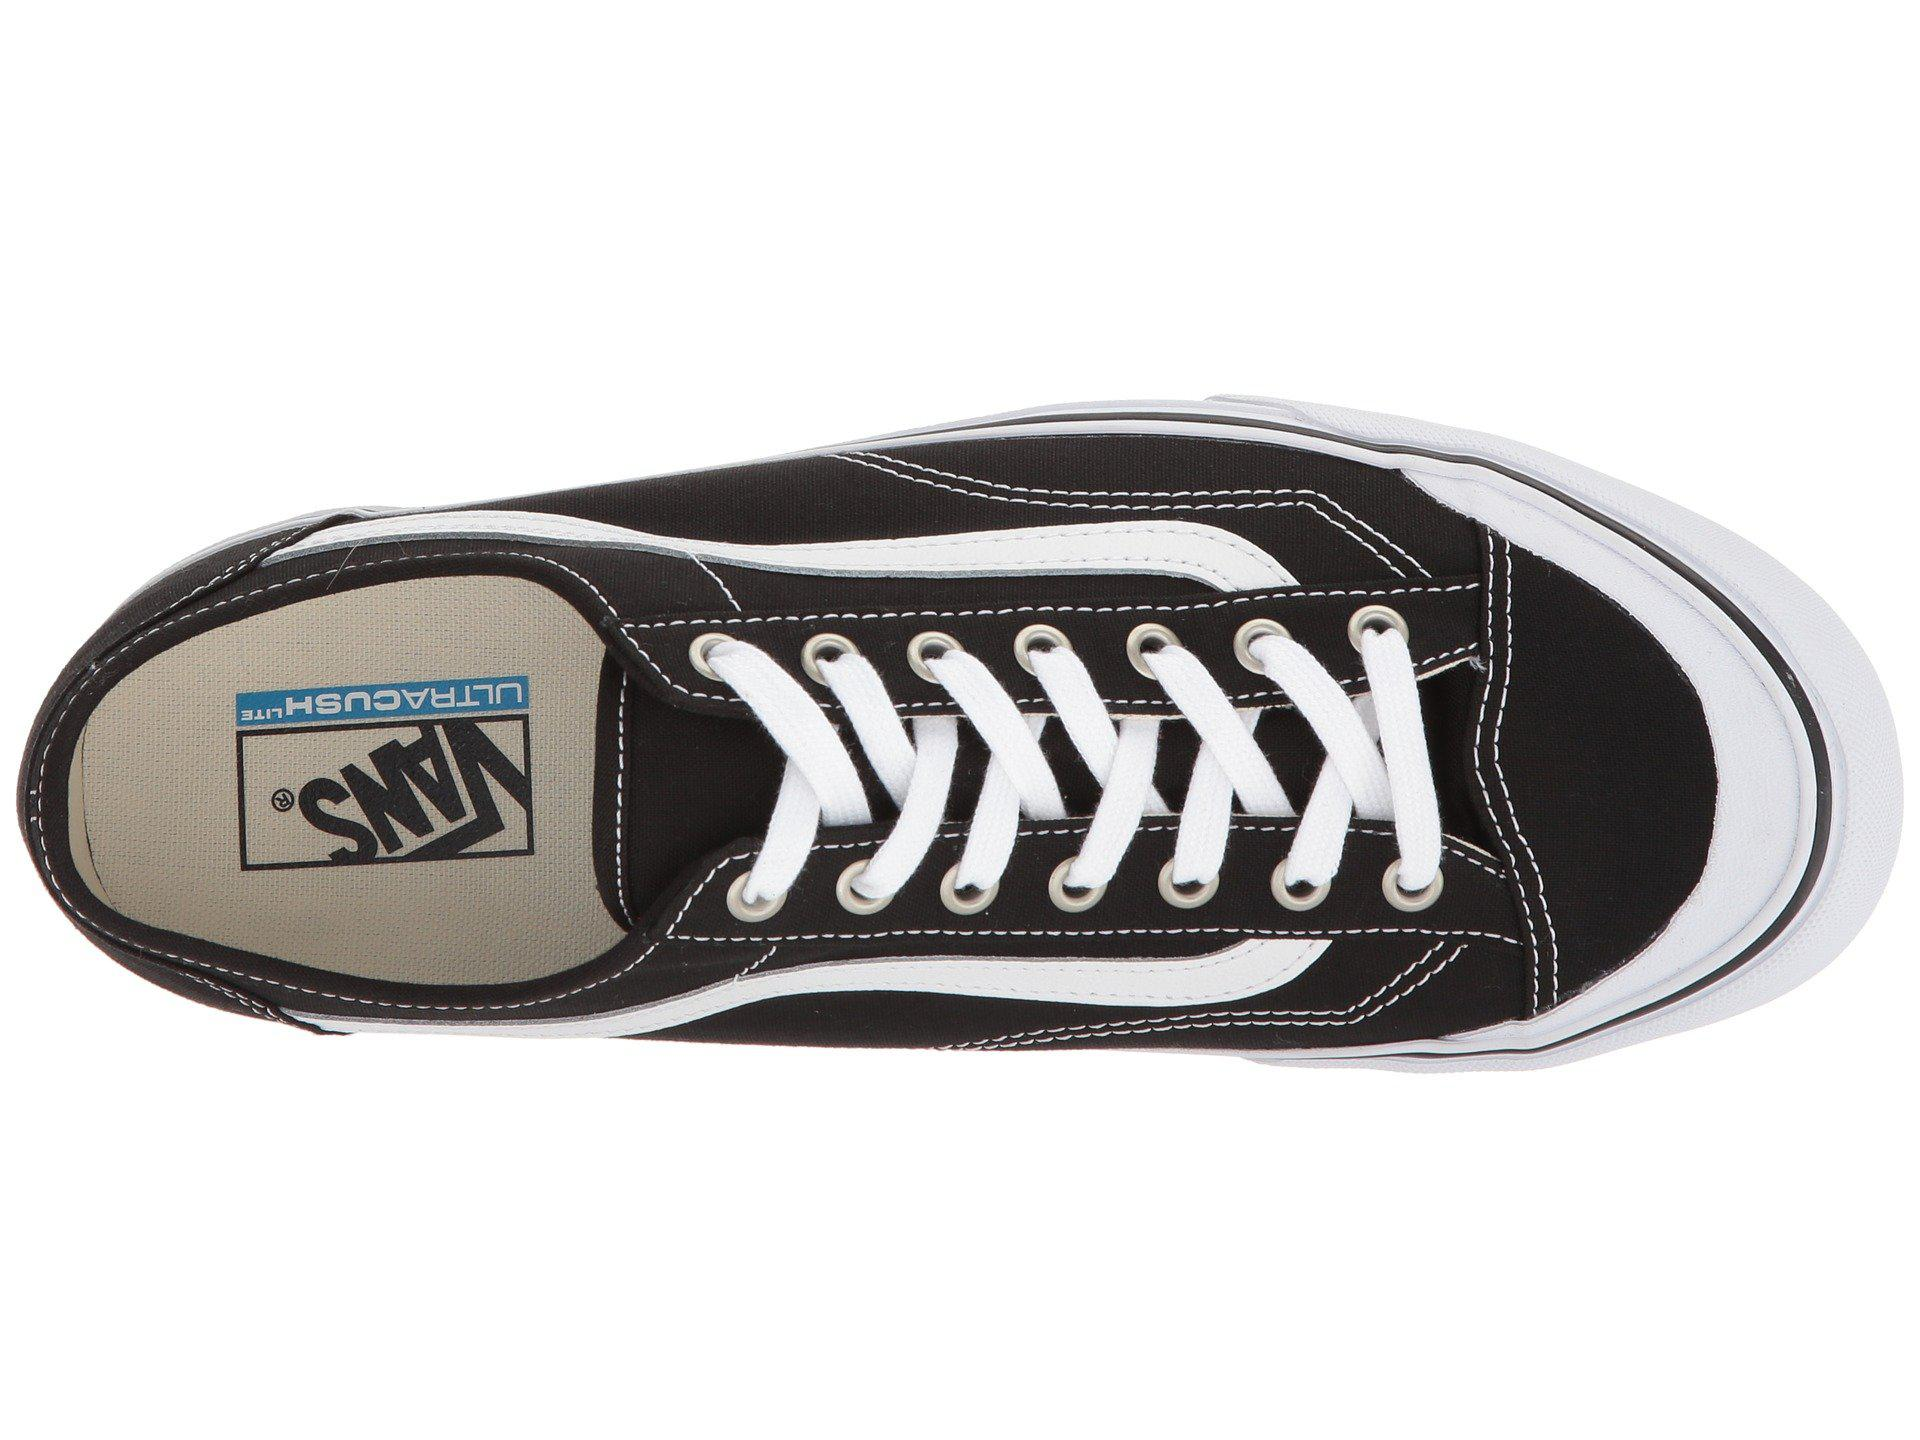 Lyst - Vans Style 36 Decon Sf (black white) Men s Skate Shoes in ... 5bbd7ca24